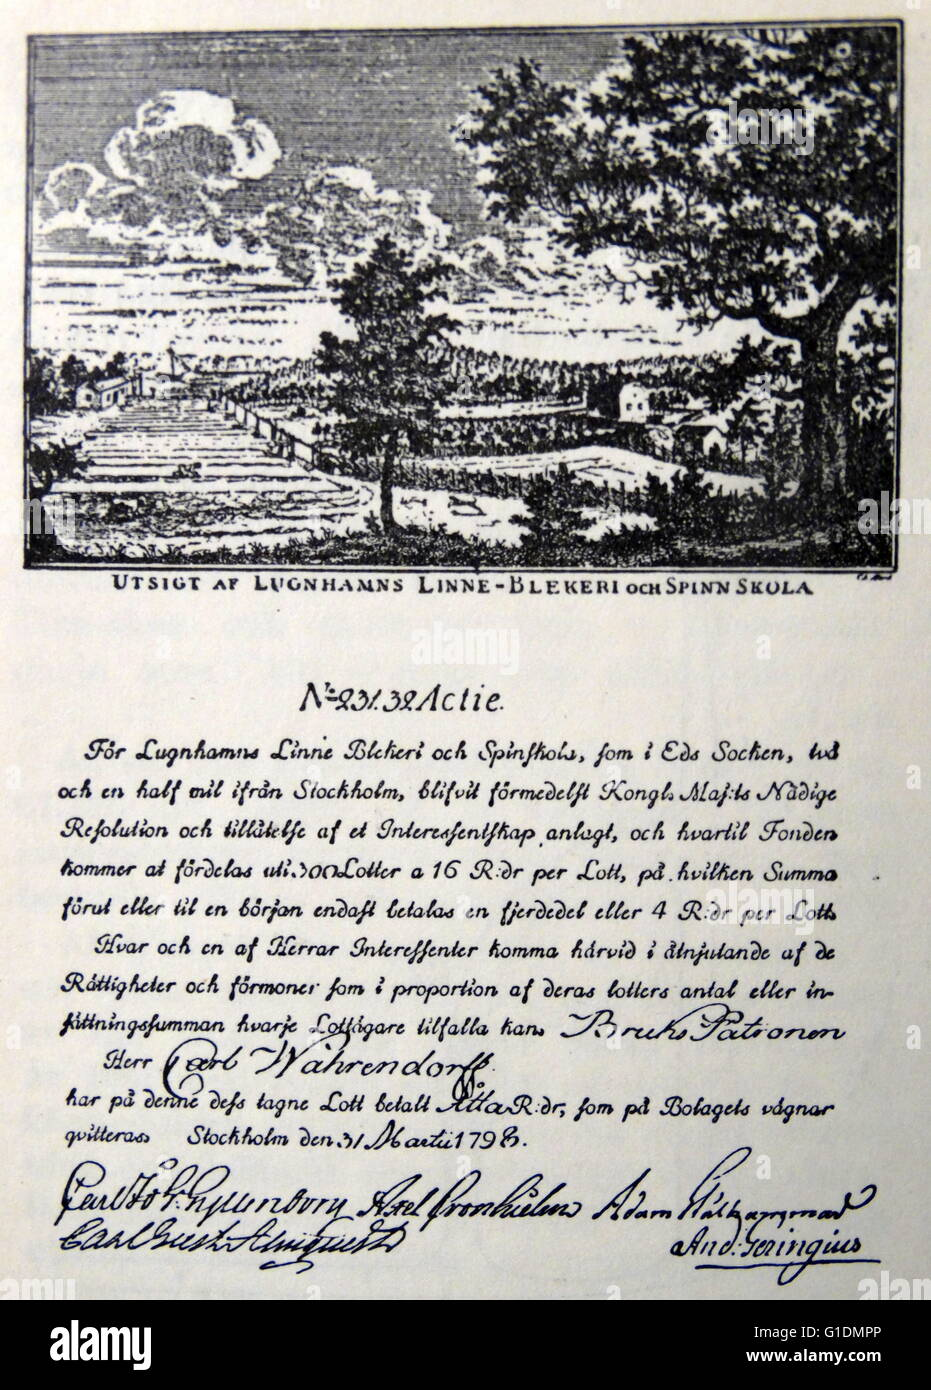 Copy of 18th Century Stock certificates. Dated 18th Century - Stock Image